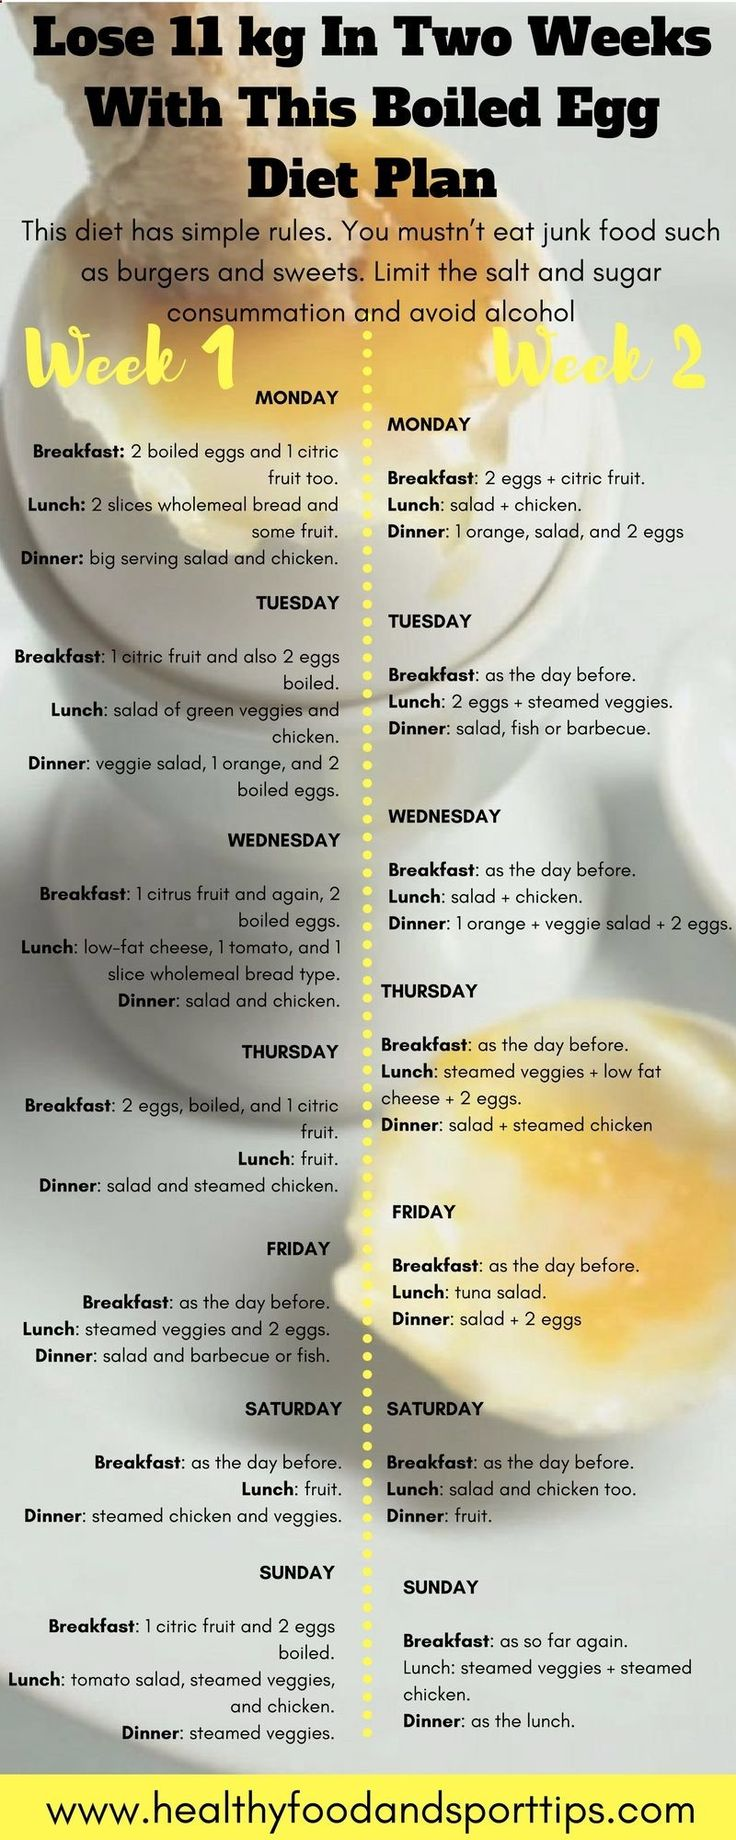 2 Week Diet Plan - Lose 11 kg In Two Weeks With This Boiled Egg Diet Plan - A Foolproof, Science-Based System thats Guaranteed to Melt Away All Your Unwanted Stubborn Body Fat in Just 14 Days...No Matter How Hard You've Tried Before!